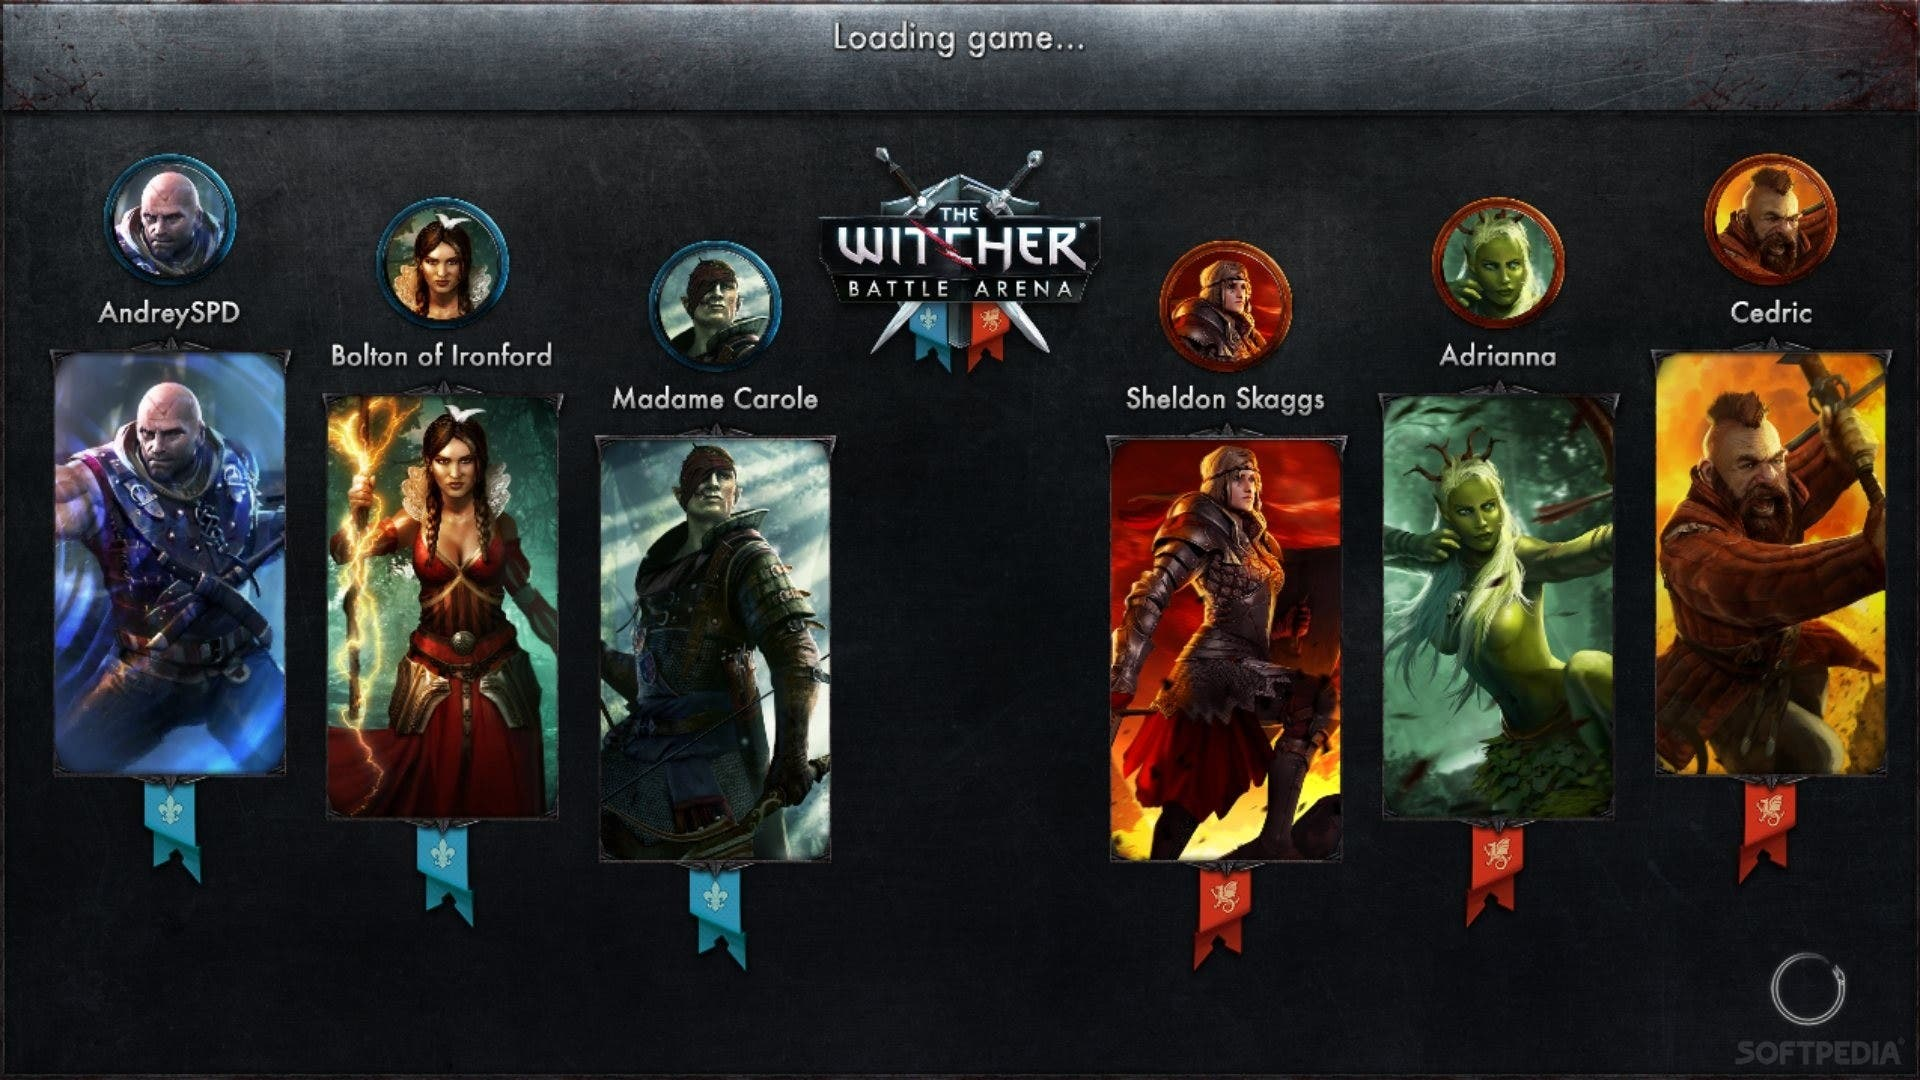 Game Centered: Featuring The Witcher MOBA, Mobile Game Profits, New Controllers